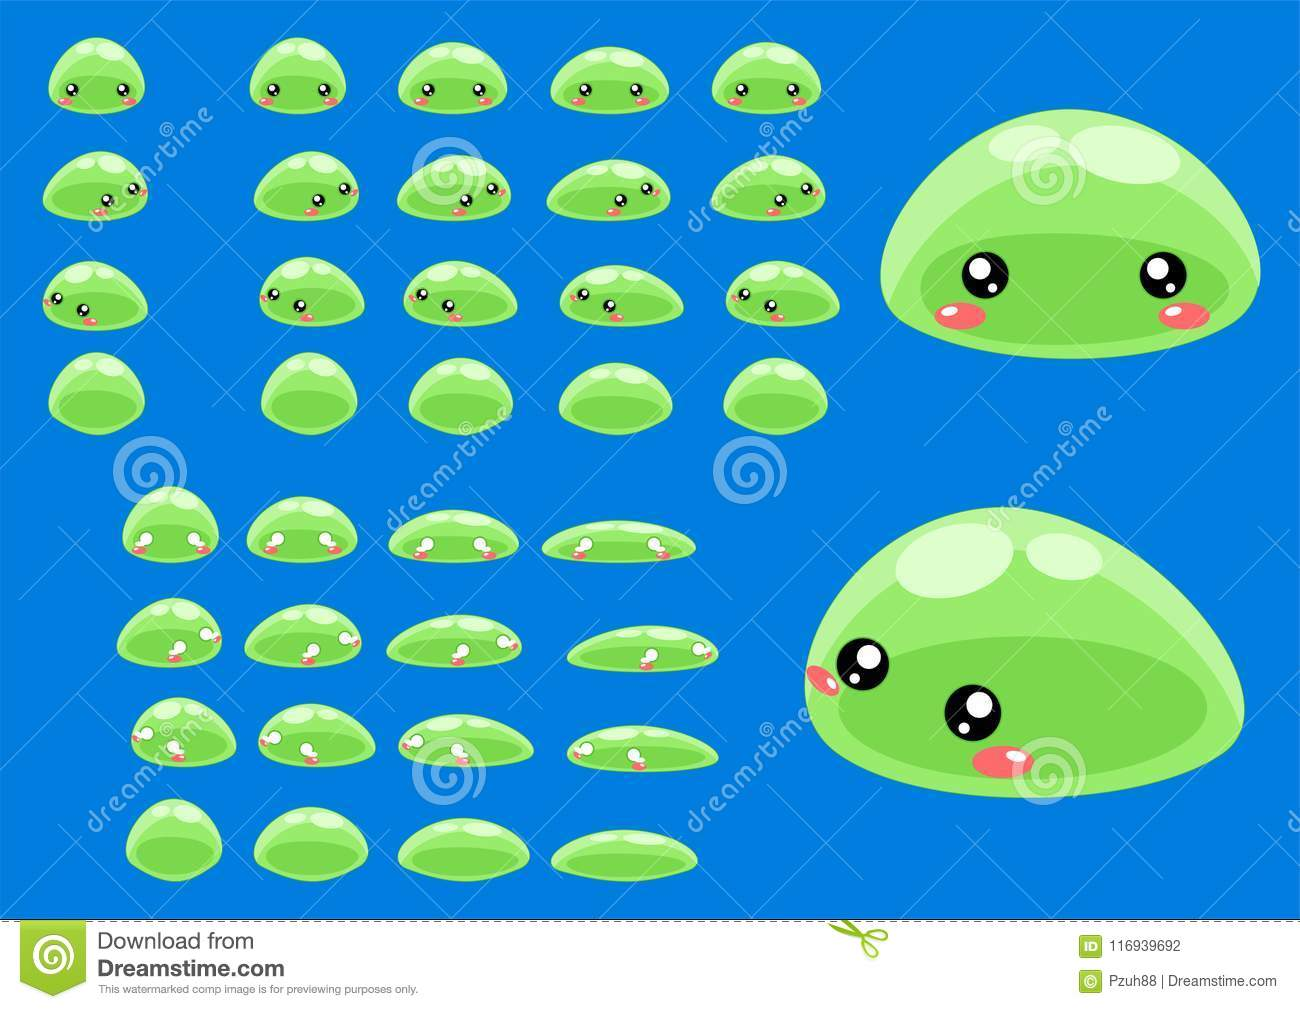 Animated Slime Character Sprites Stock Vector - Illustration of